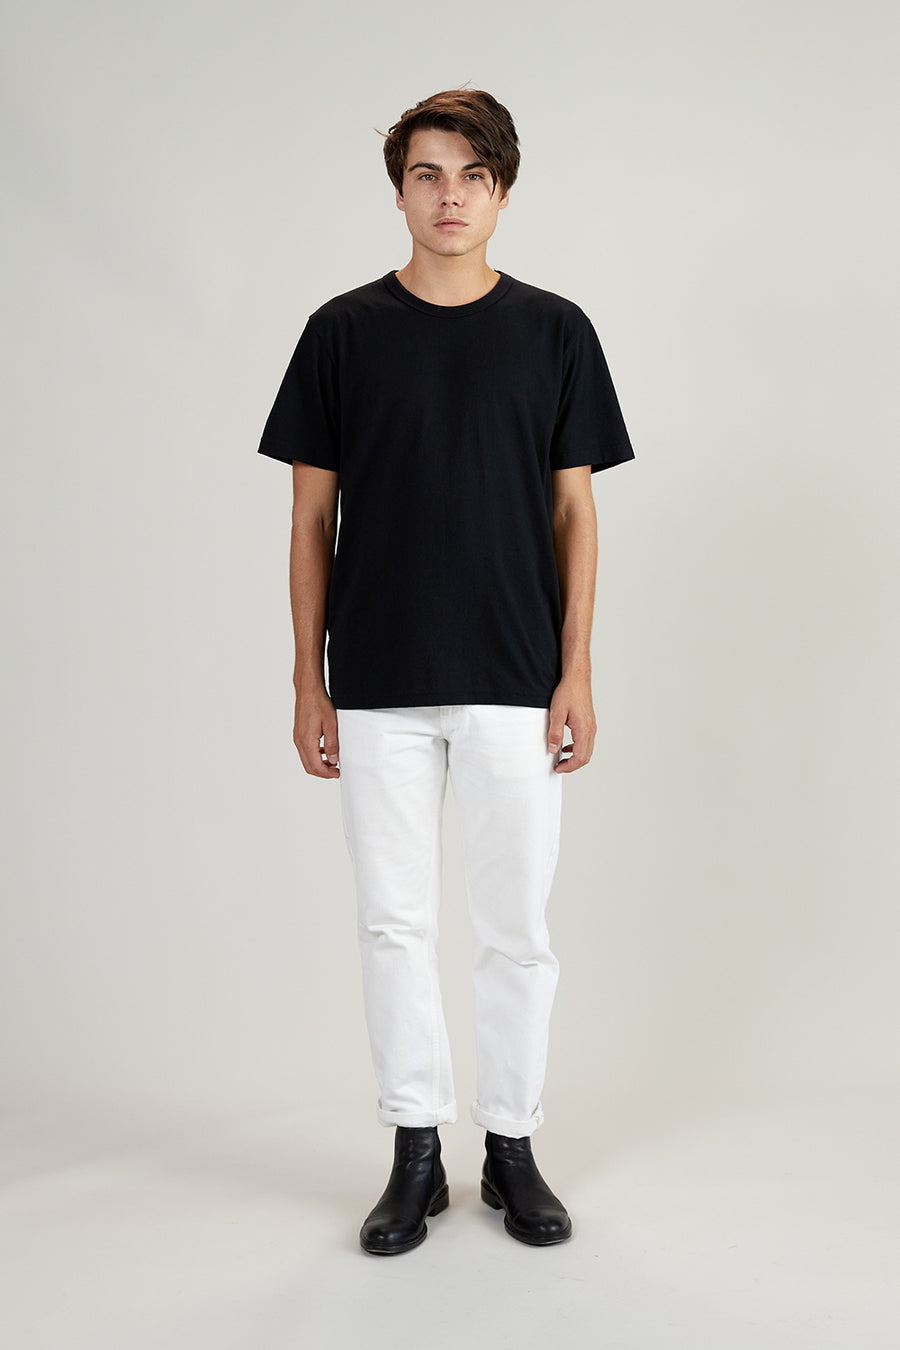 Recycled Tee | Vintage Black